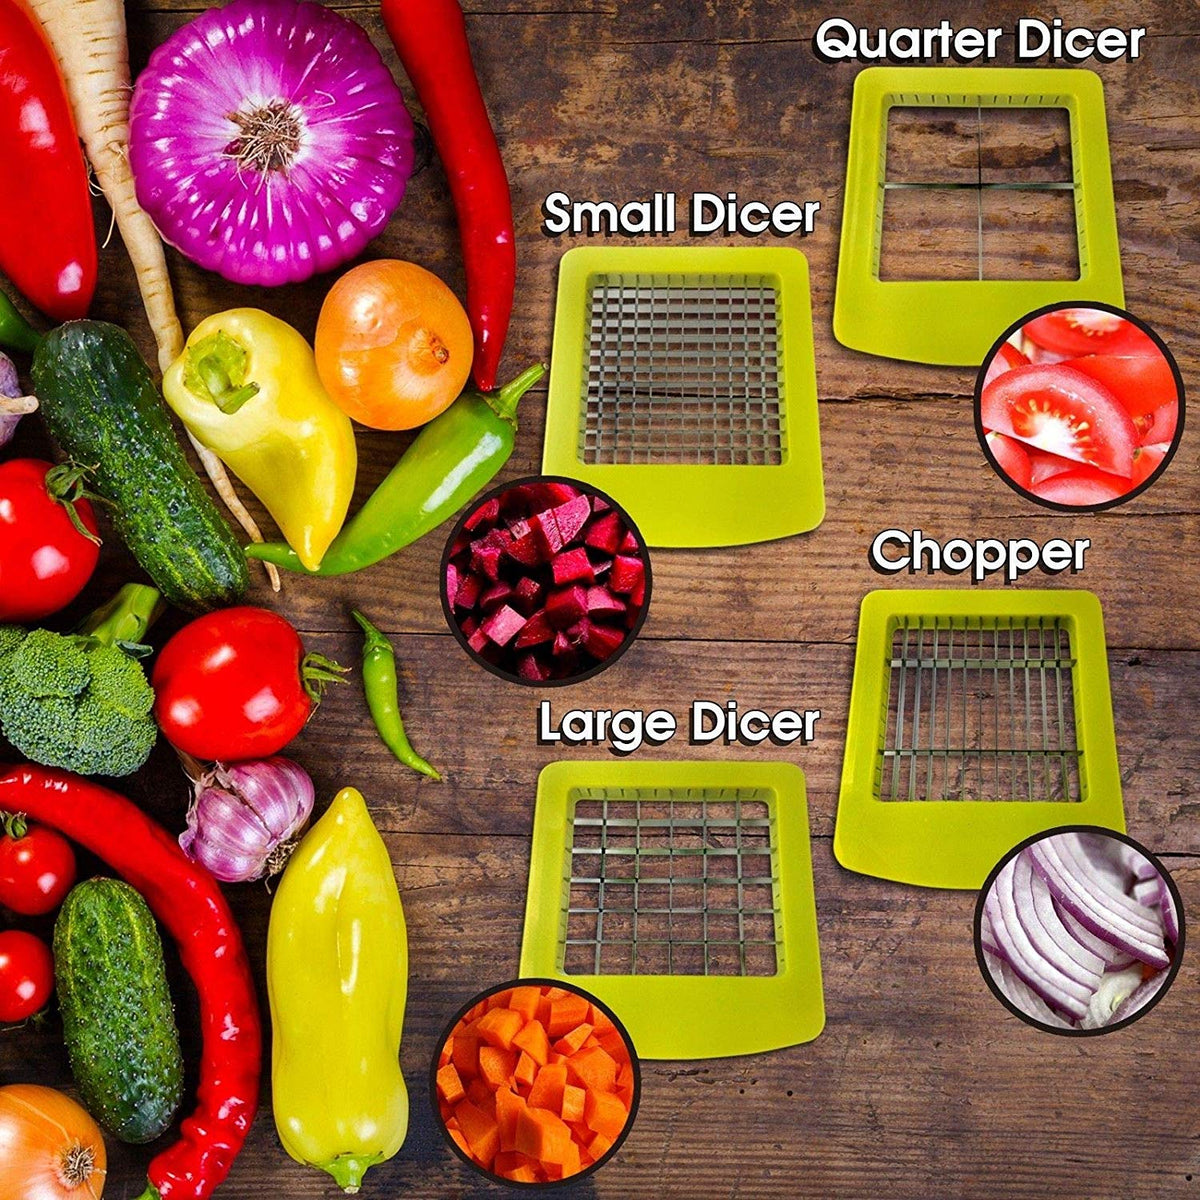 SMART CHEF 12 IN 1MULTIFUNCIONAL DICER AND SLICER  - 50% OFF